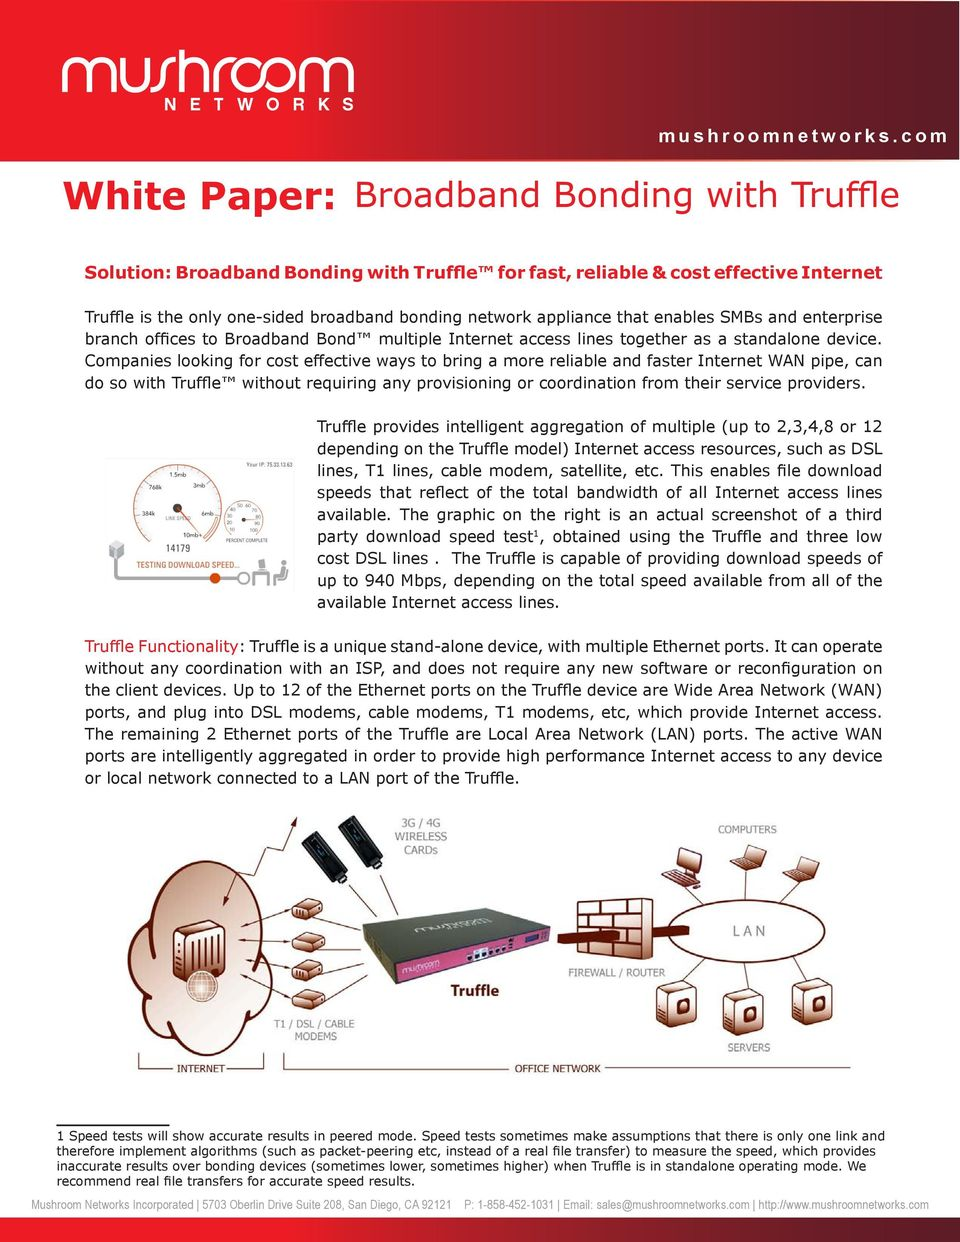 Companies looking for cost effective ways to bring a more reliable and faster Internet WAN pipe, can do so with Truffle without requiring any provisioning or coordination from their service providers.